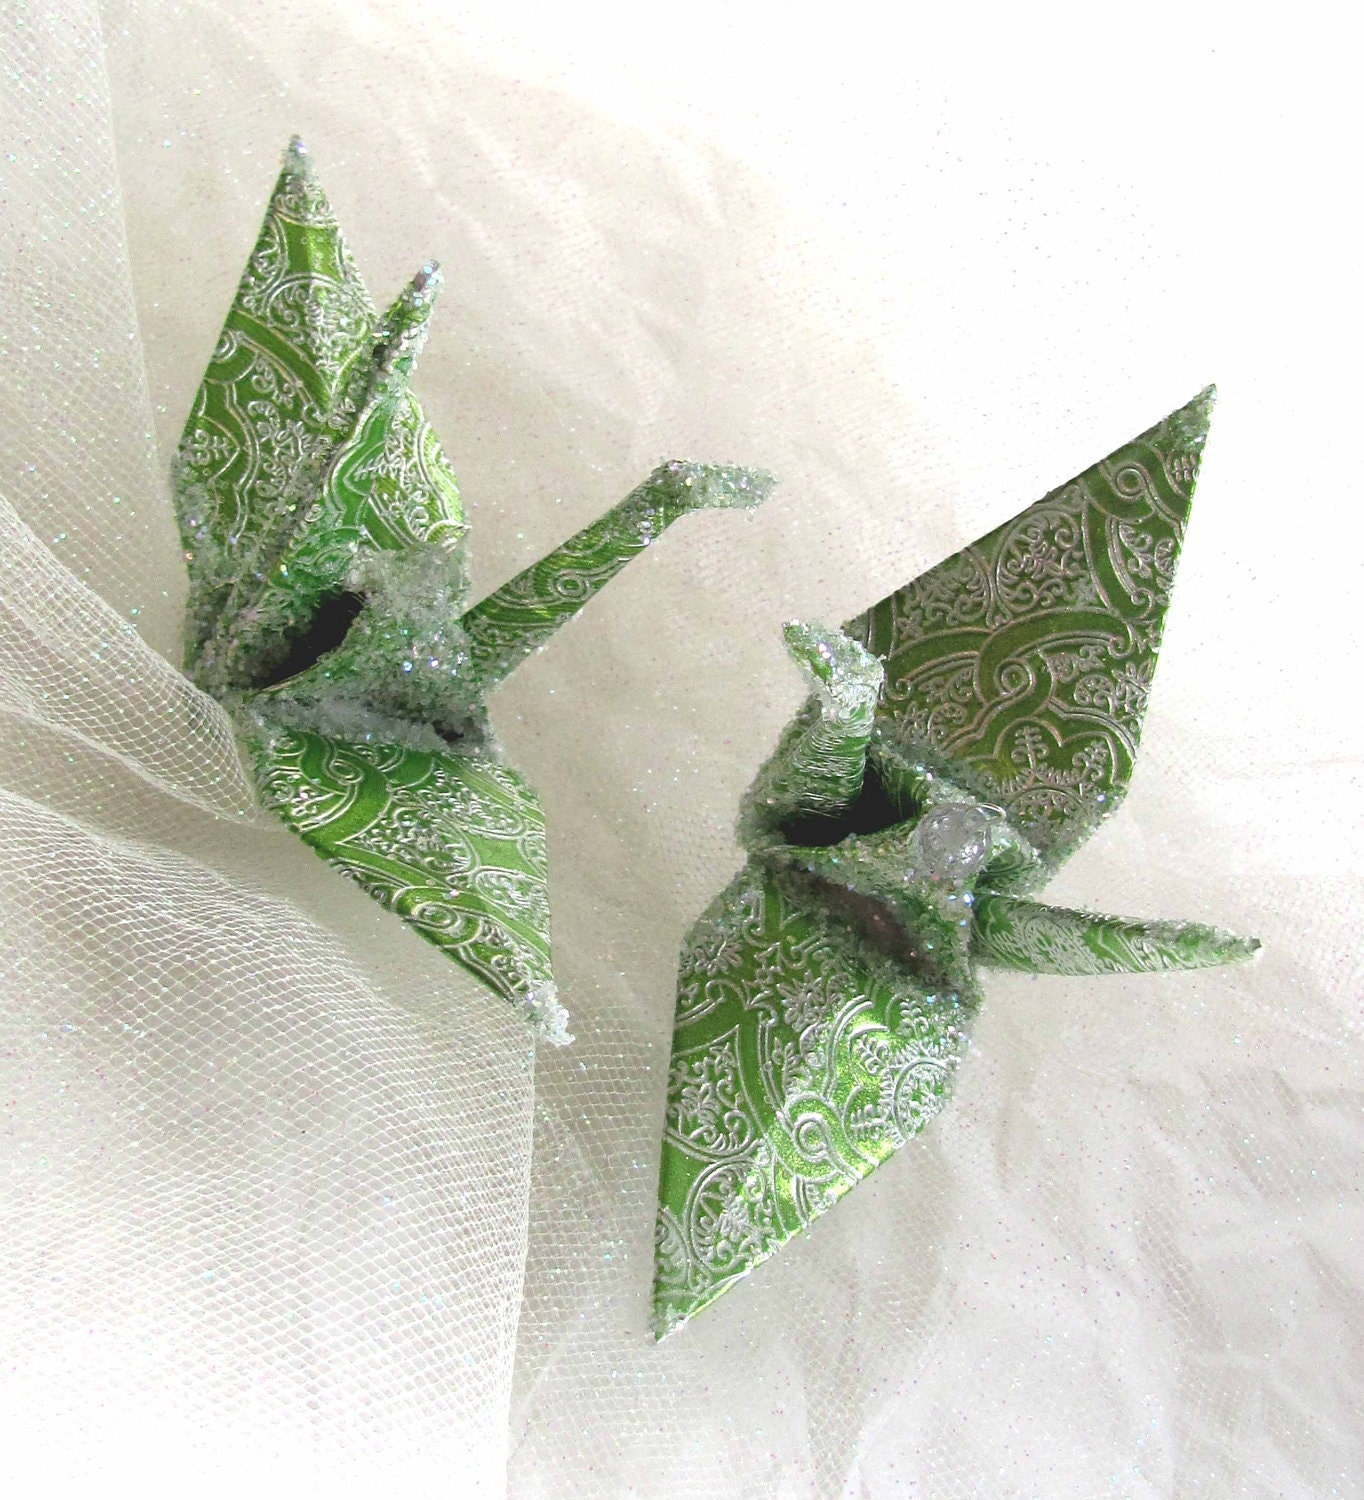 Brocade Peace Crane Origami Wedding Cake Topper Party Favor Ornament Bird Green Renaissance - localcolorist